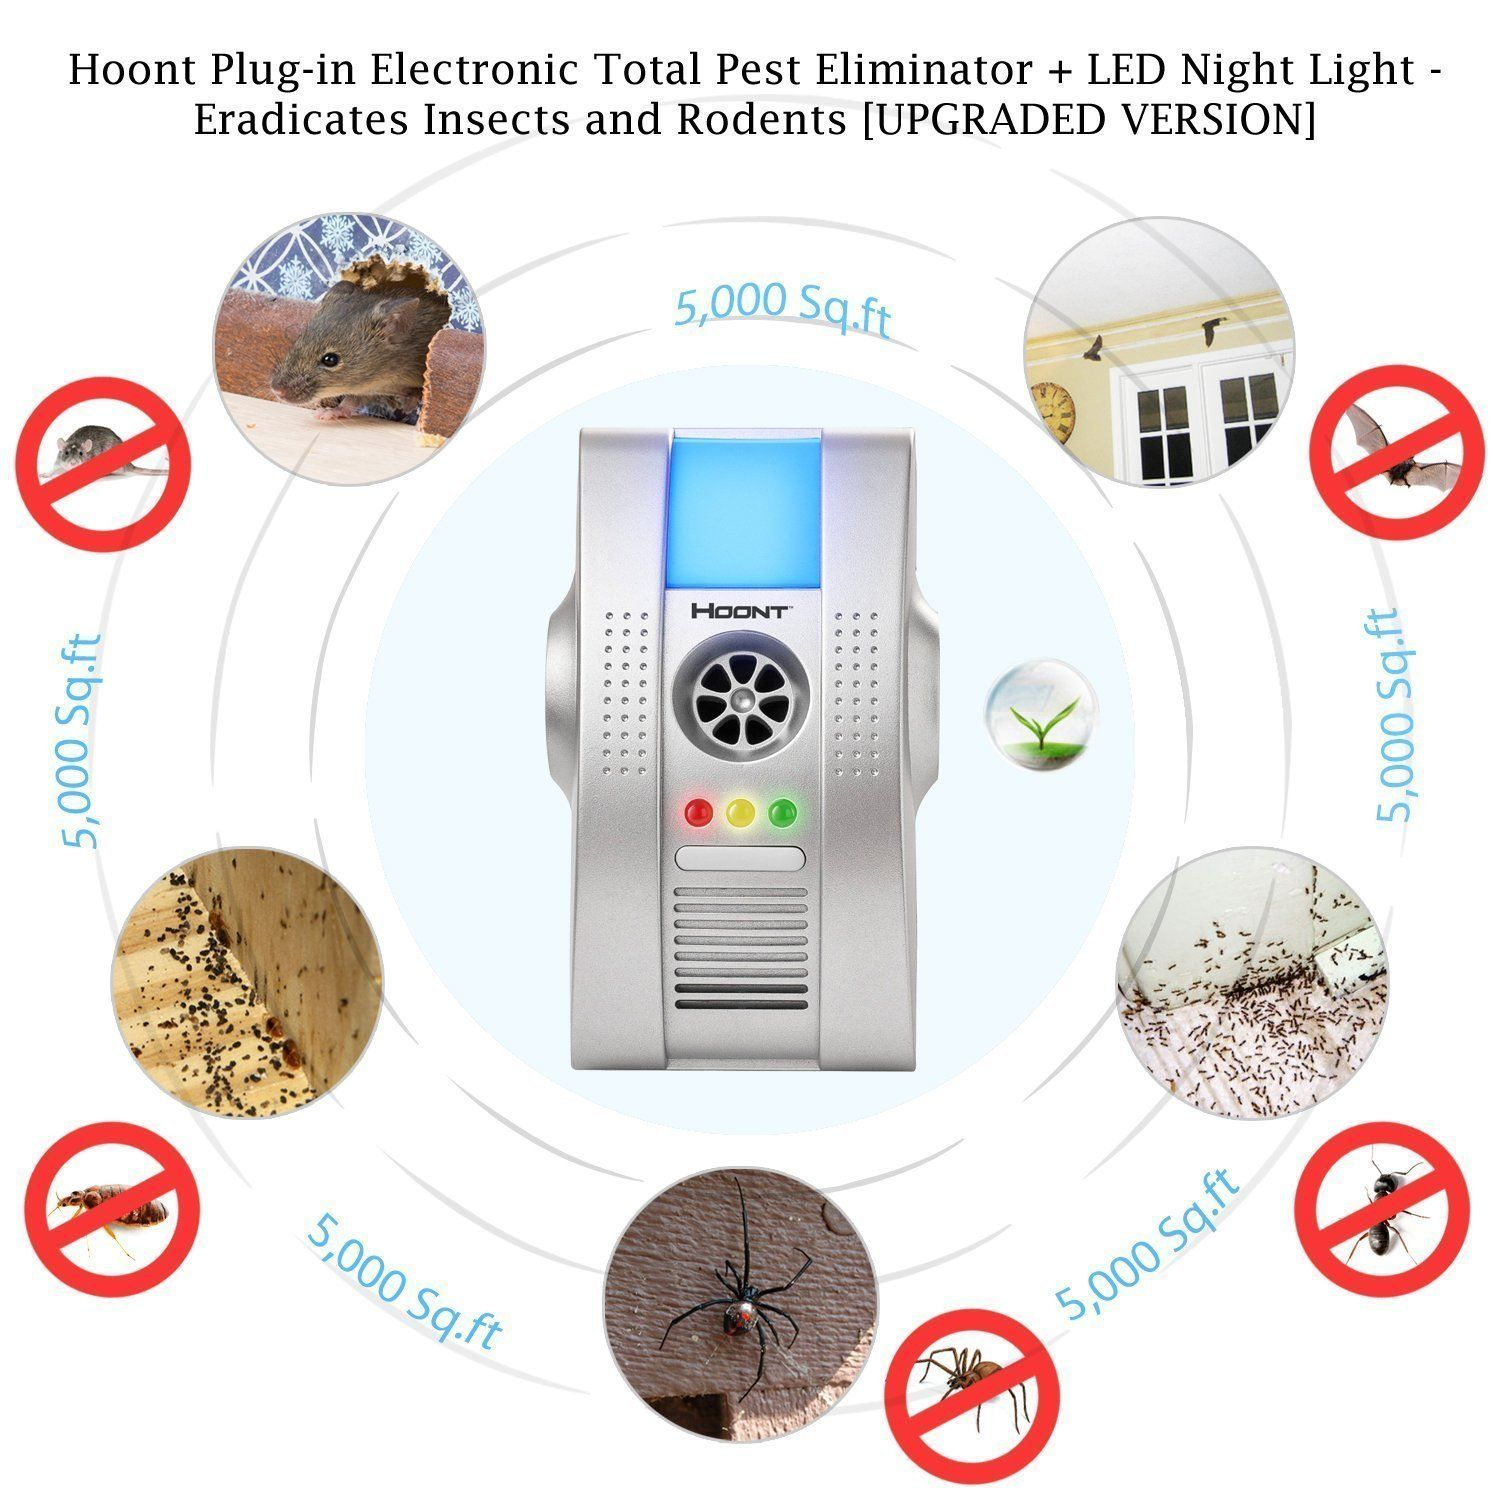 Hoont™ 2 Pack Plug-in Electronic Total Pest Eliminator